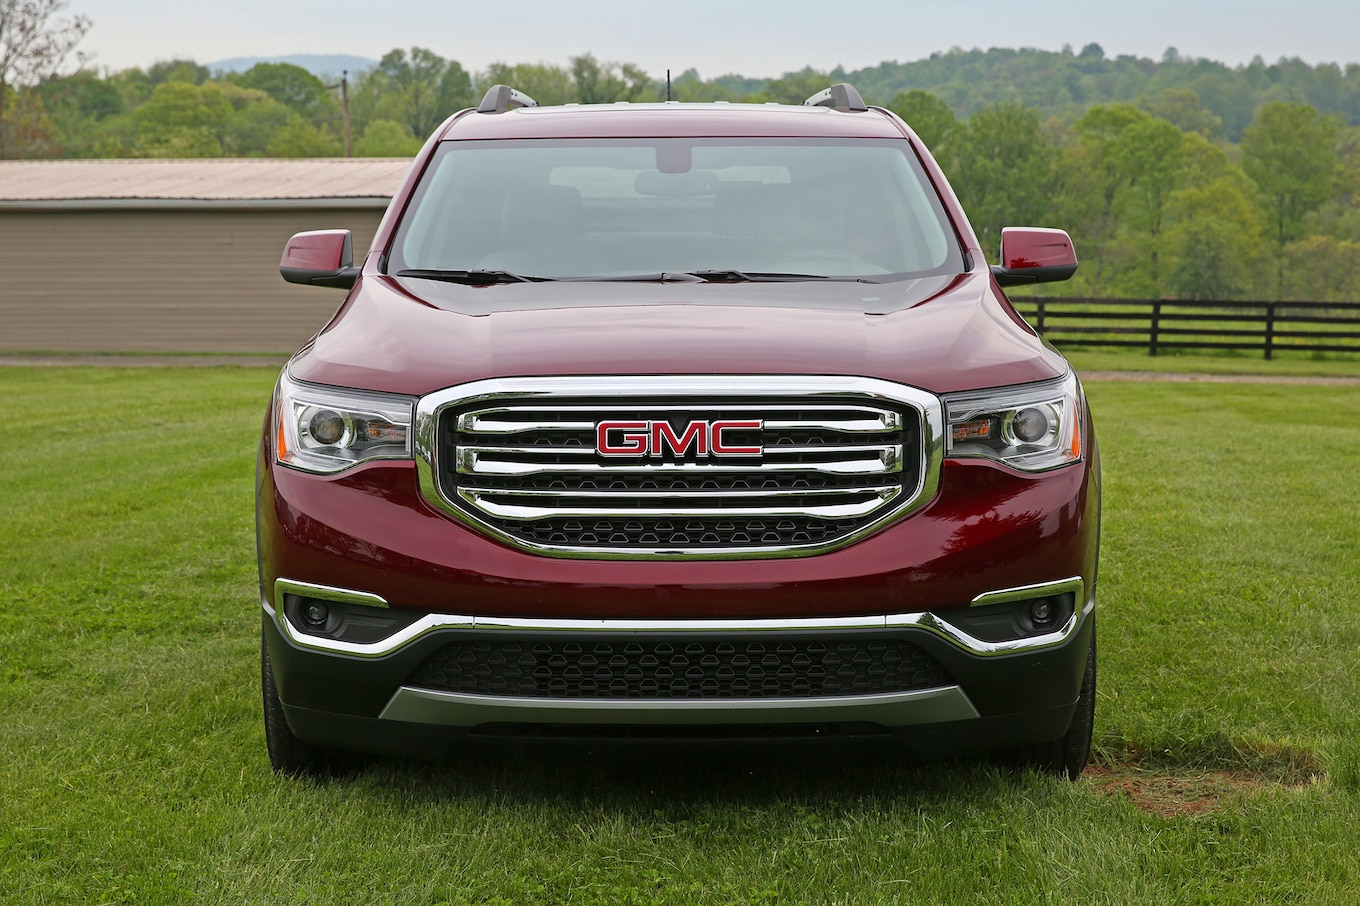 2017 Gmc Acadia First Drive Review Smaller On Purpose